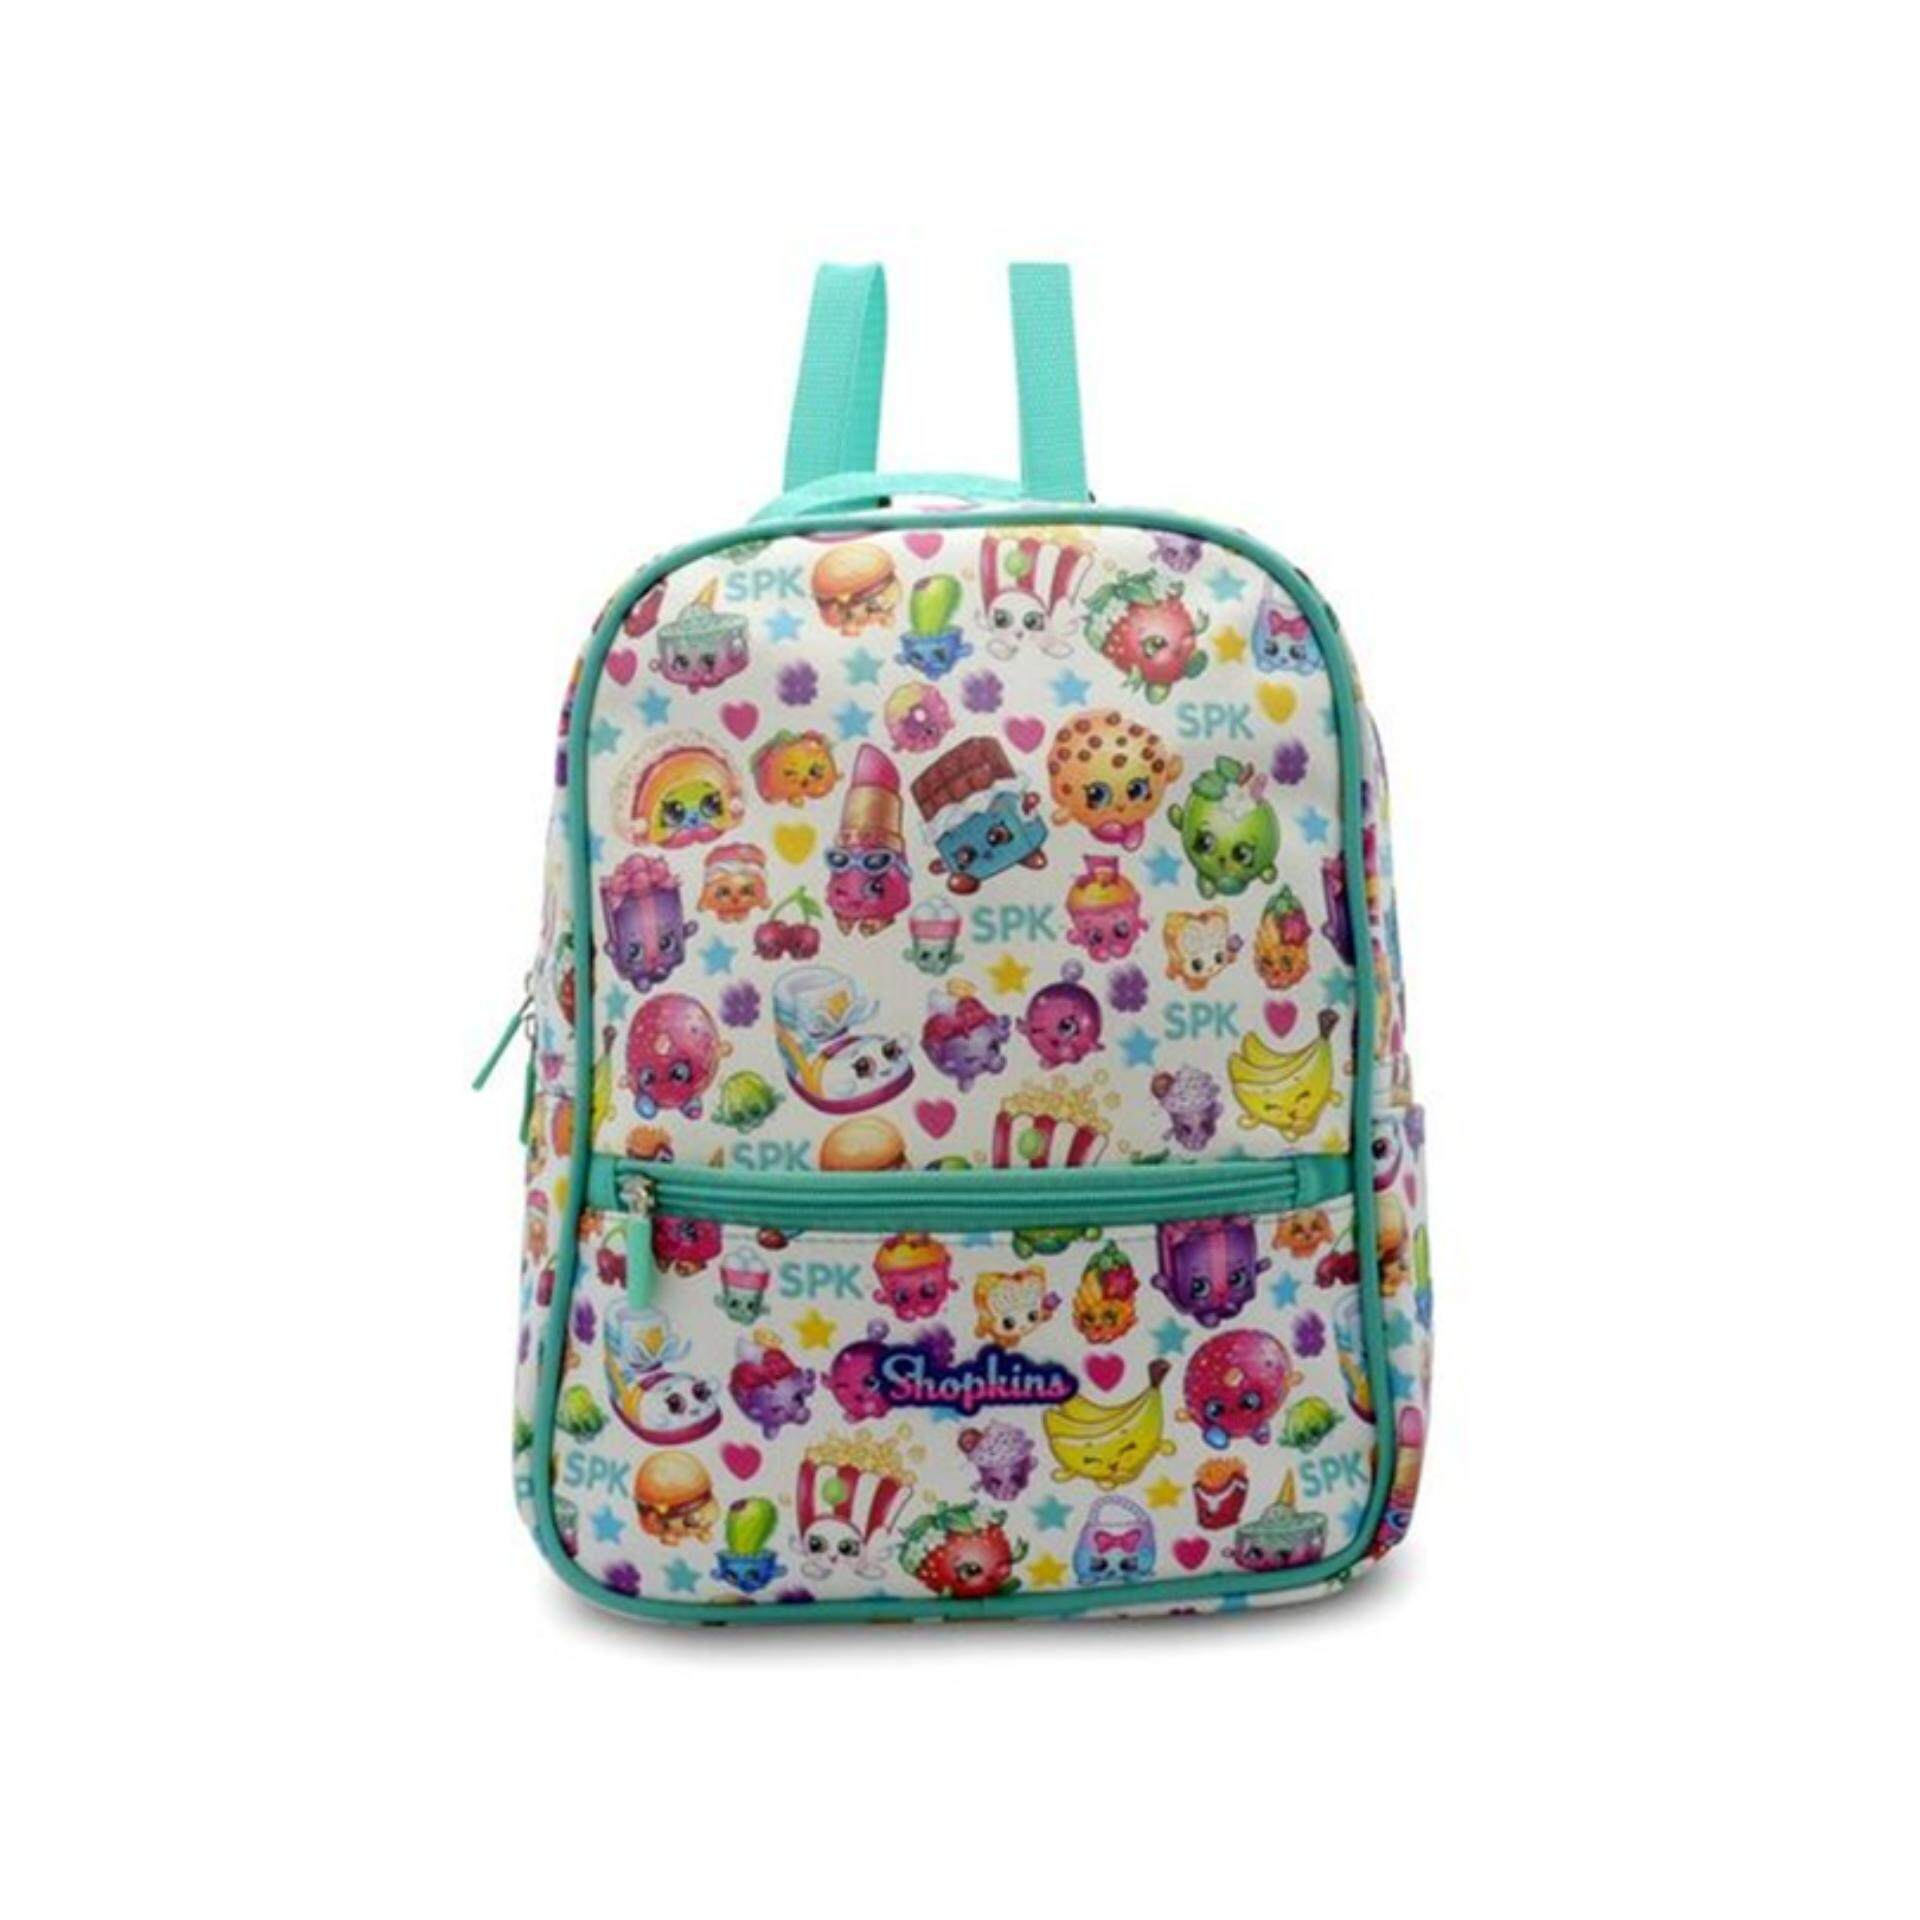 Shopkins Backpack School Bag 12.5 Inches - Light Blue Colour 7b36732ee99a4